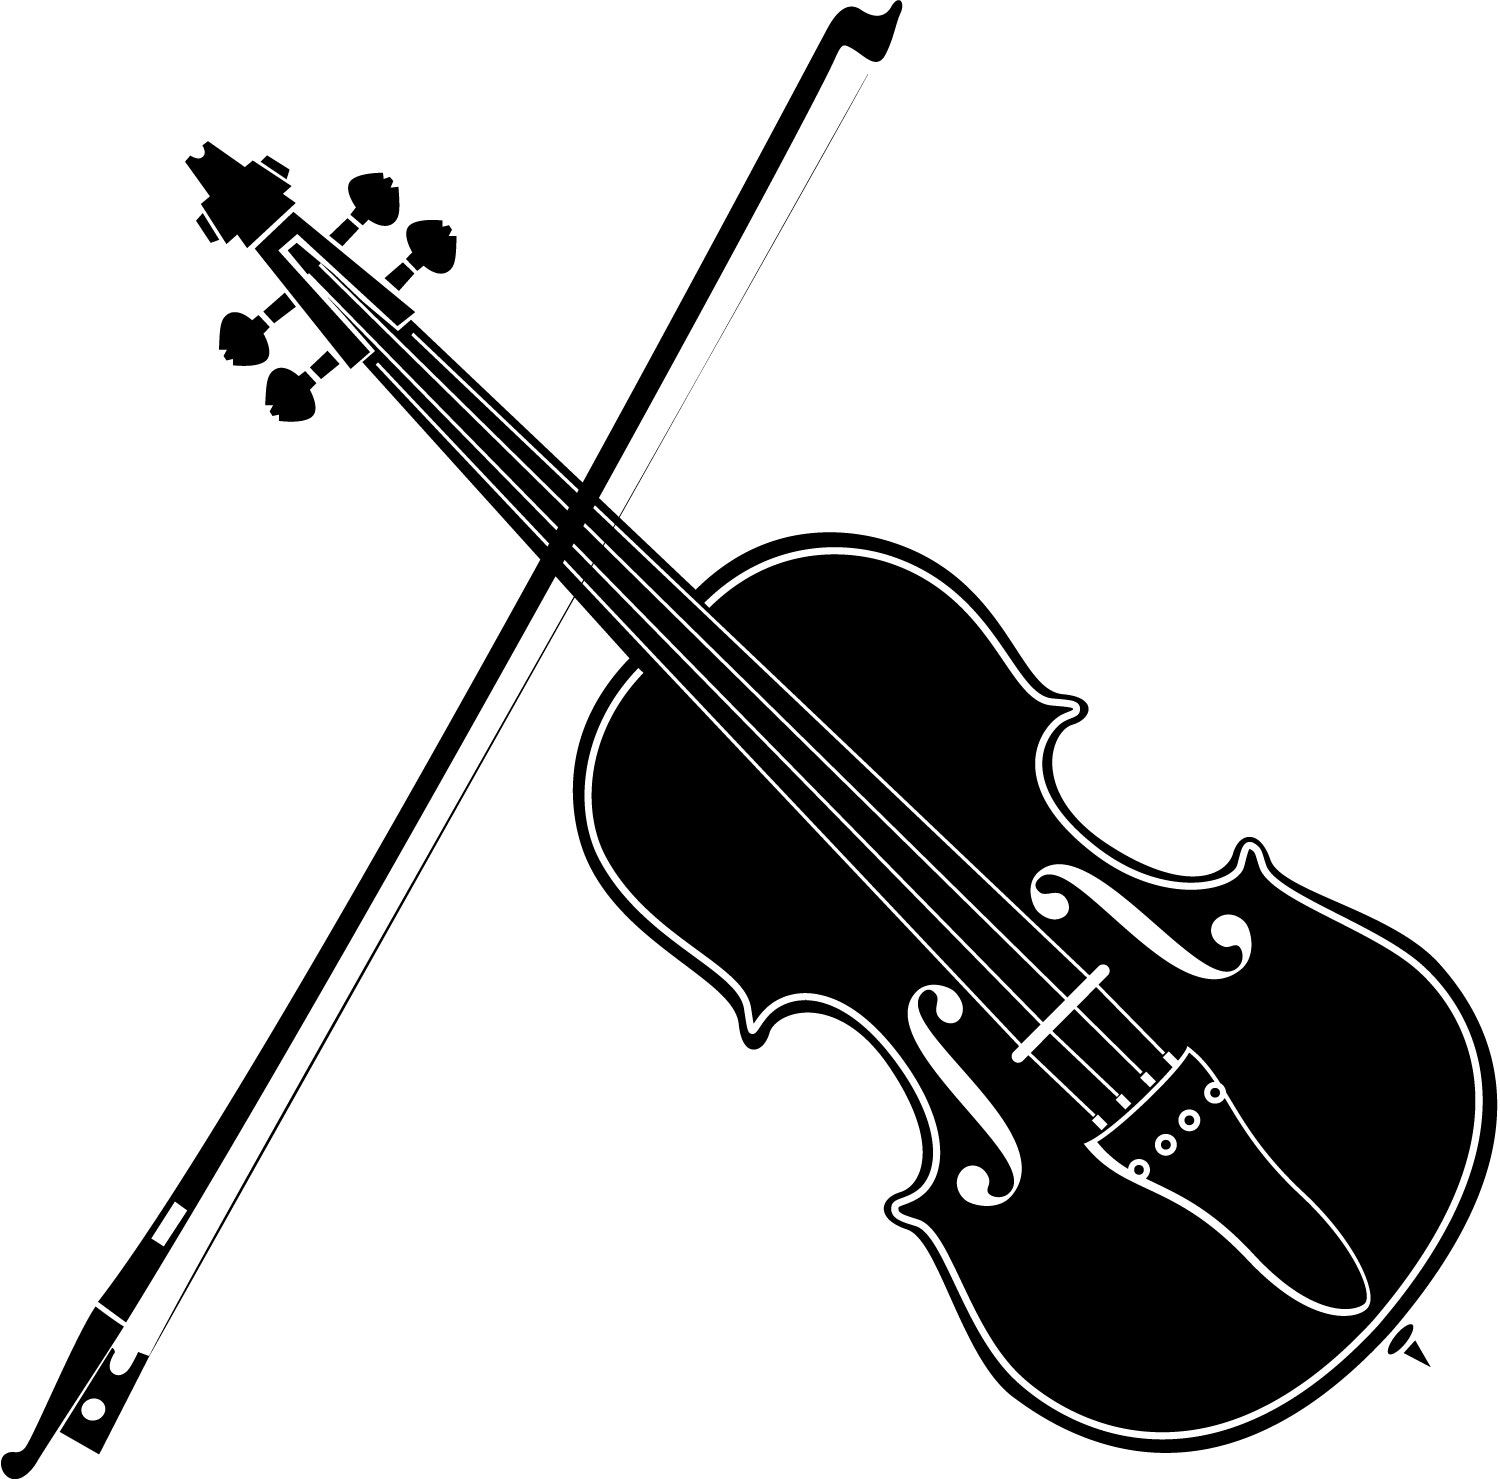 Playing Violin Clipart Black And White | Clipart Panda - Free .